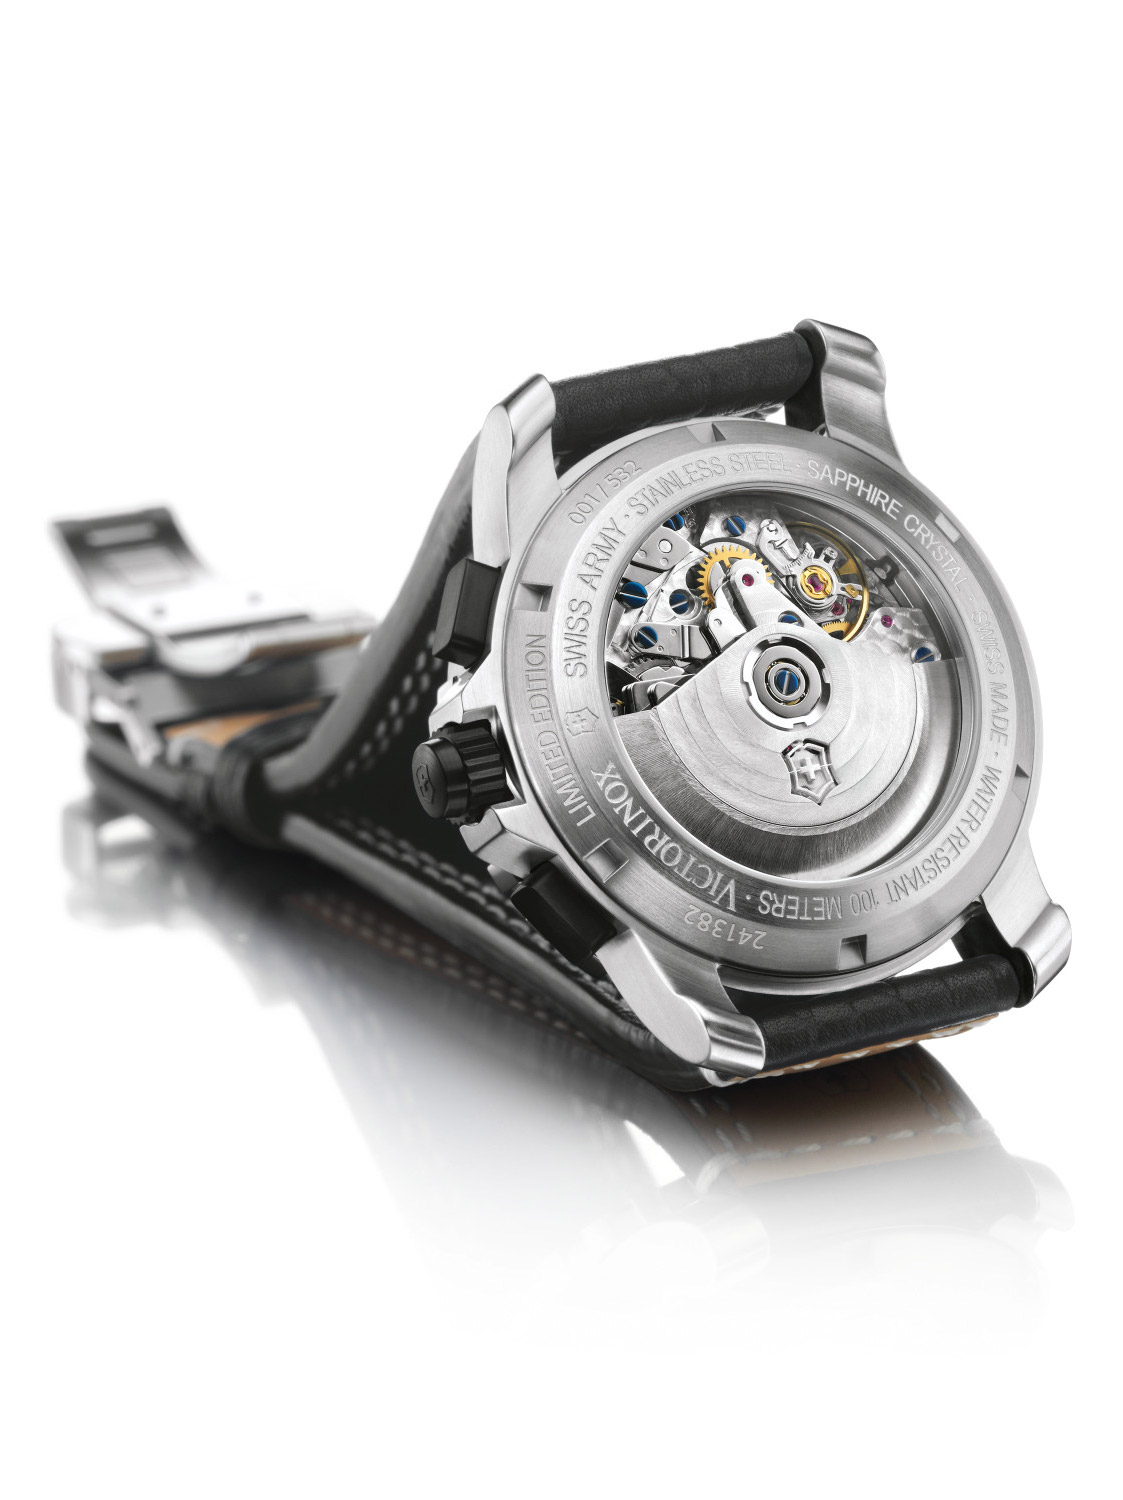 A helicopter-inspired timekeeper by victorinox swiss army.